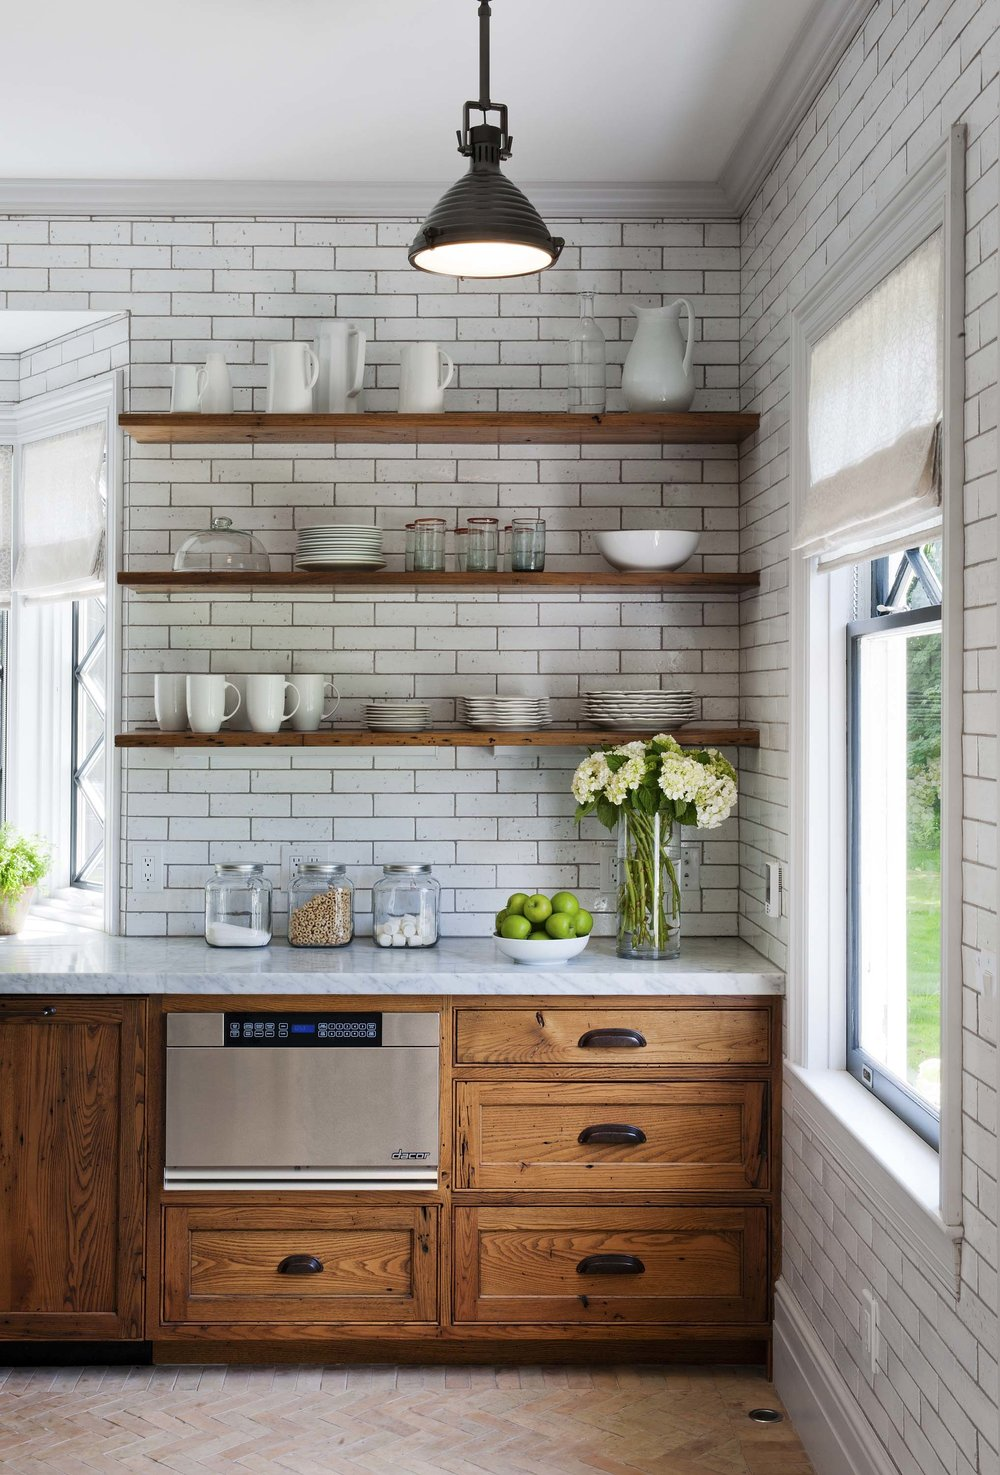 Source: Crown Point Cabinetry